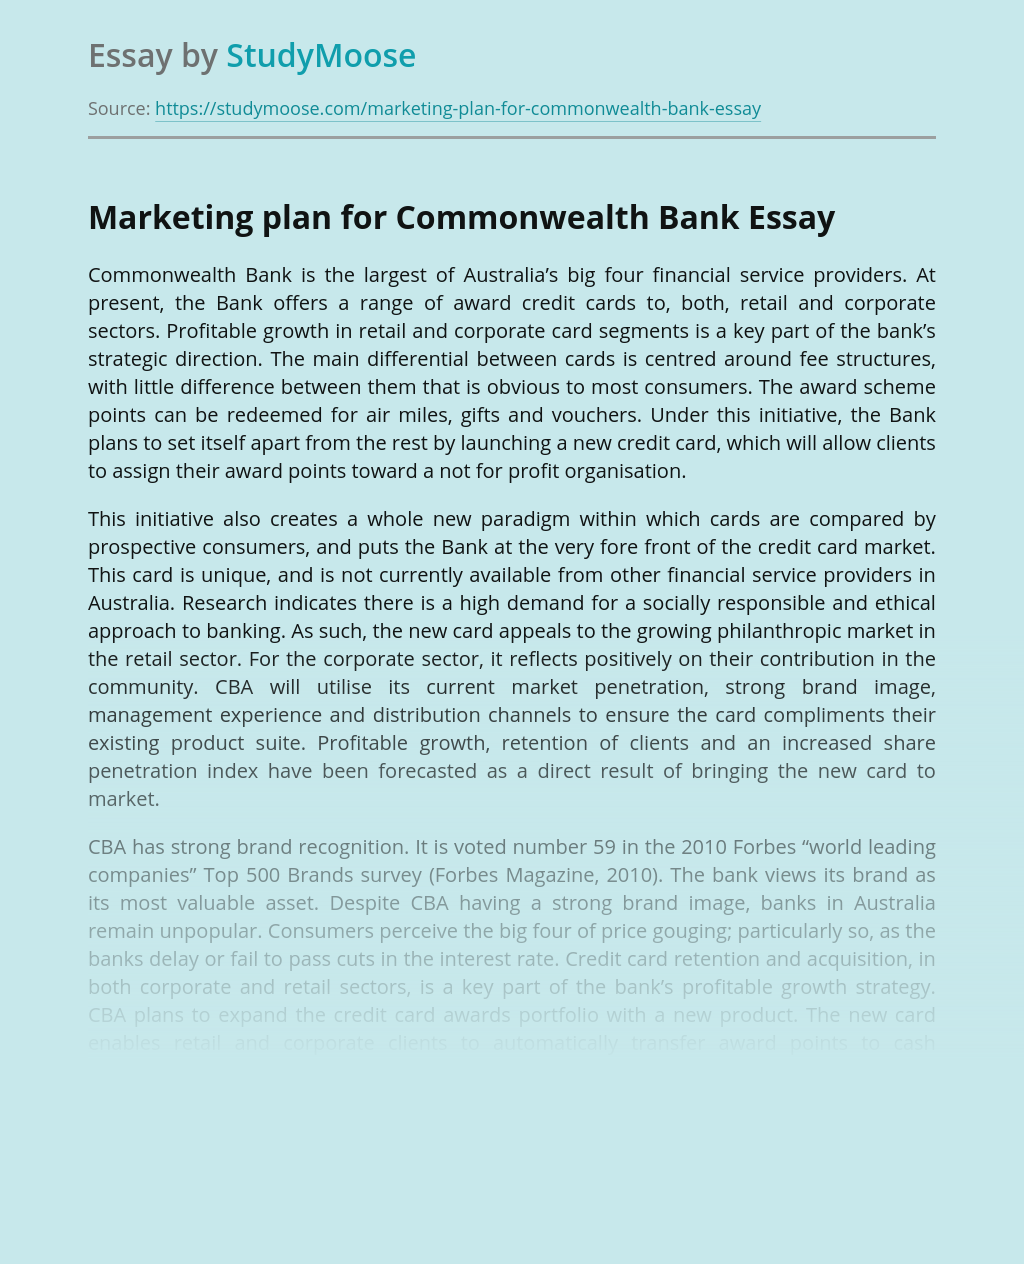 Marketing plan for Commonwealth Bank